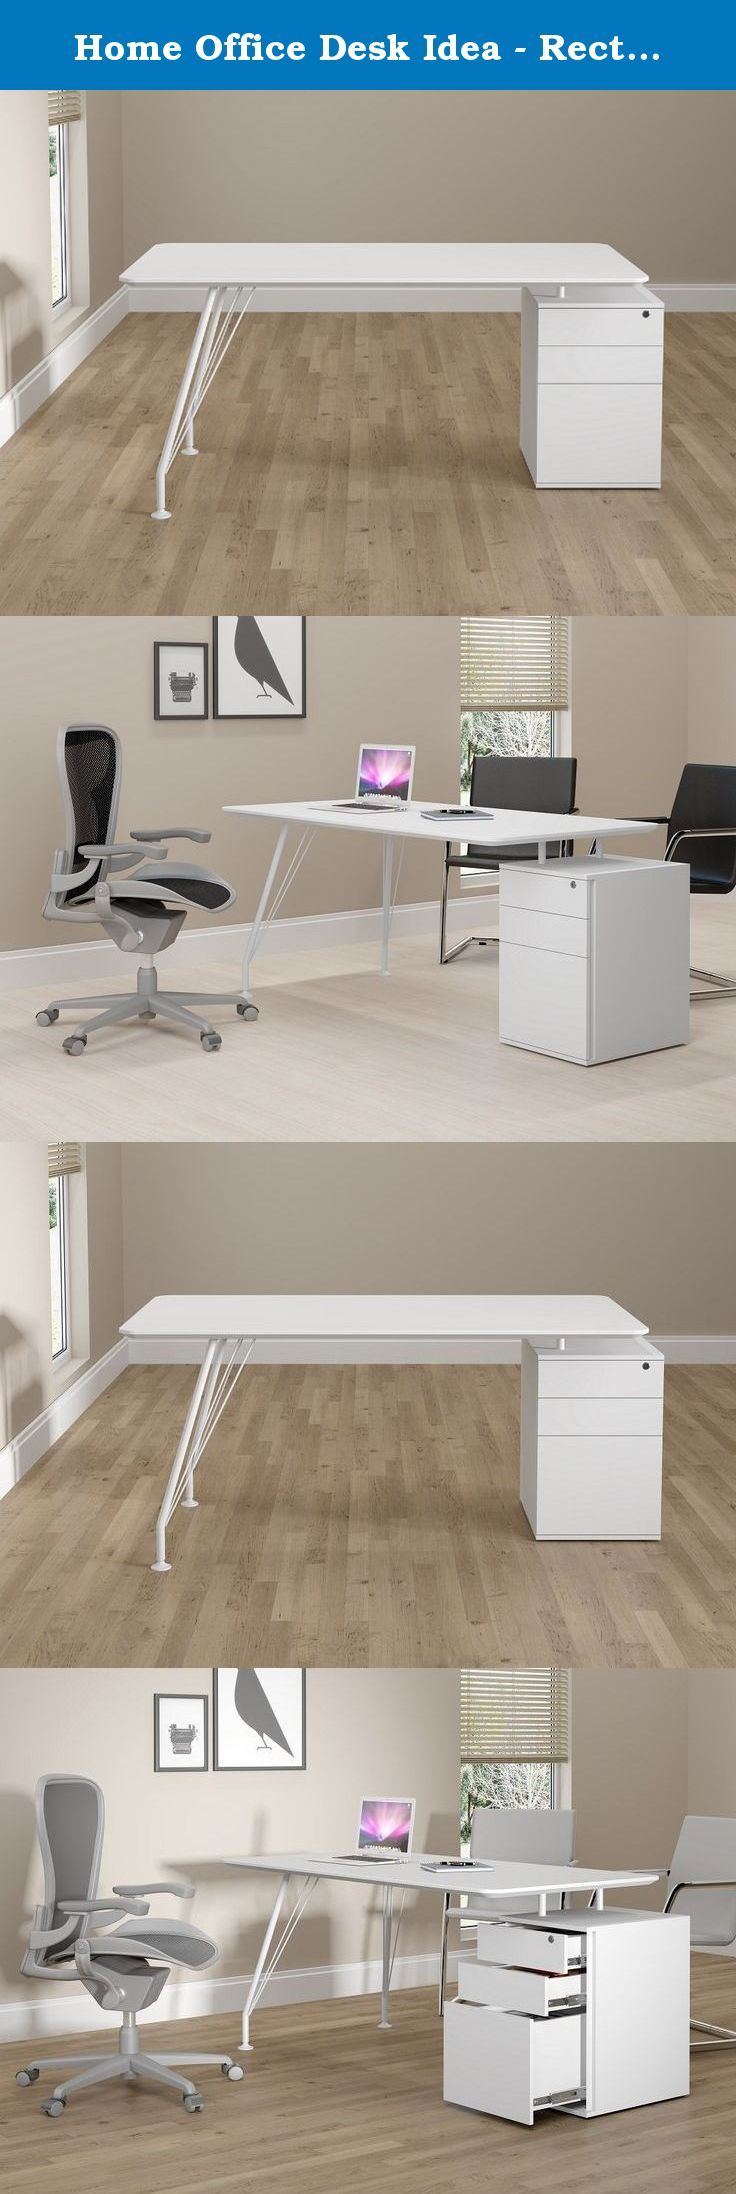 Home Office Desk Idea - Rectangular with Drawer Cabinet, White. Simplicity is the word that defines the Idea furniture line. A set of solutions designed to meet business needs on a daily basis. Functionality and flexibility are combined with the sleekness, harmony and good taste of its forms. Its fresh innovative design provides not only an easy practical approach but also aesthetic and efficient features to contemporary domestic and corporate spaces. Rectangular desks with 2 legs and 25mm...